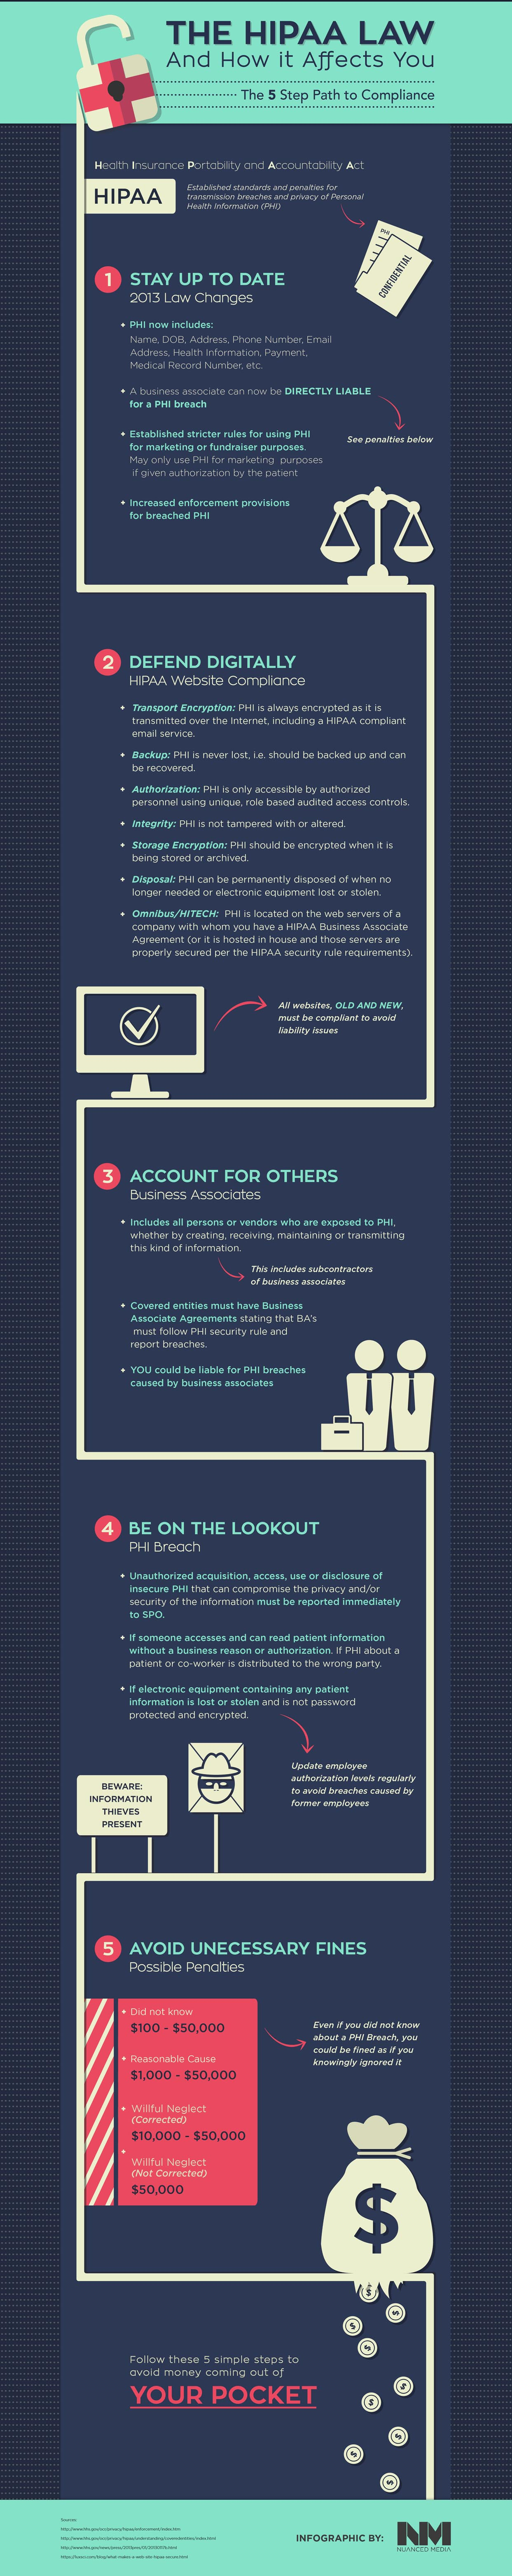 Hipaa Law How It Effects You Medical Websites Infographic